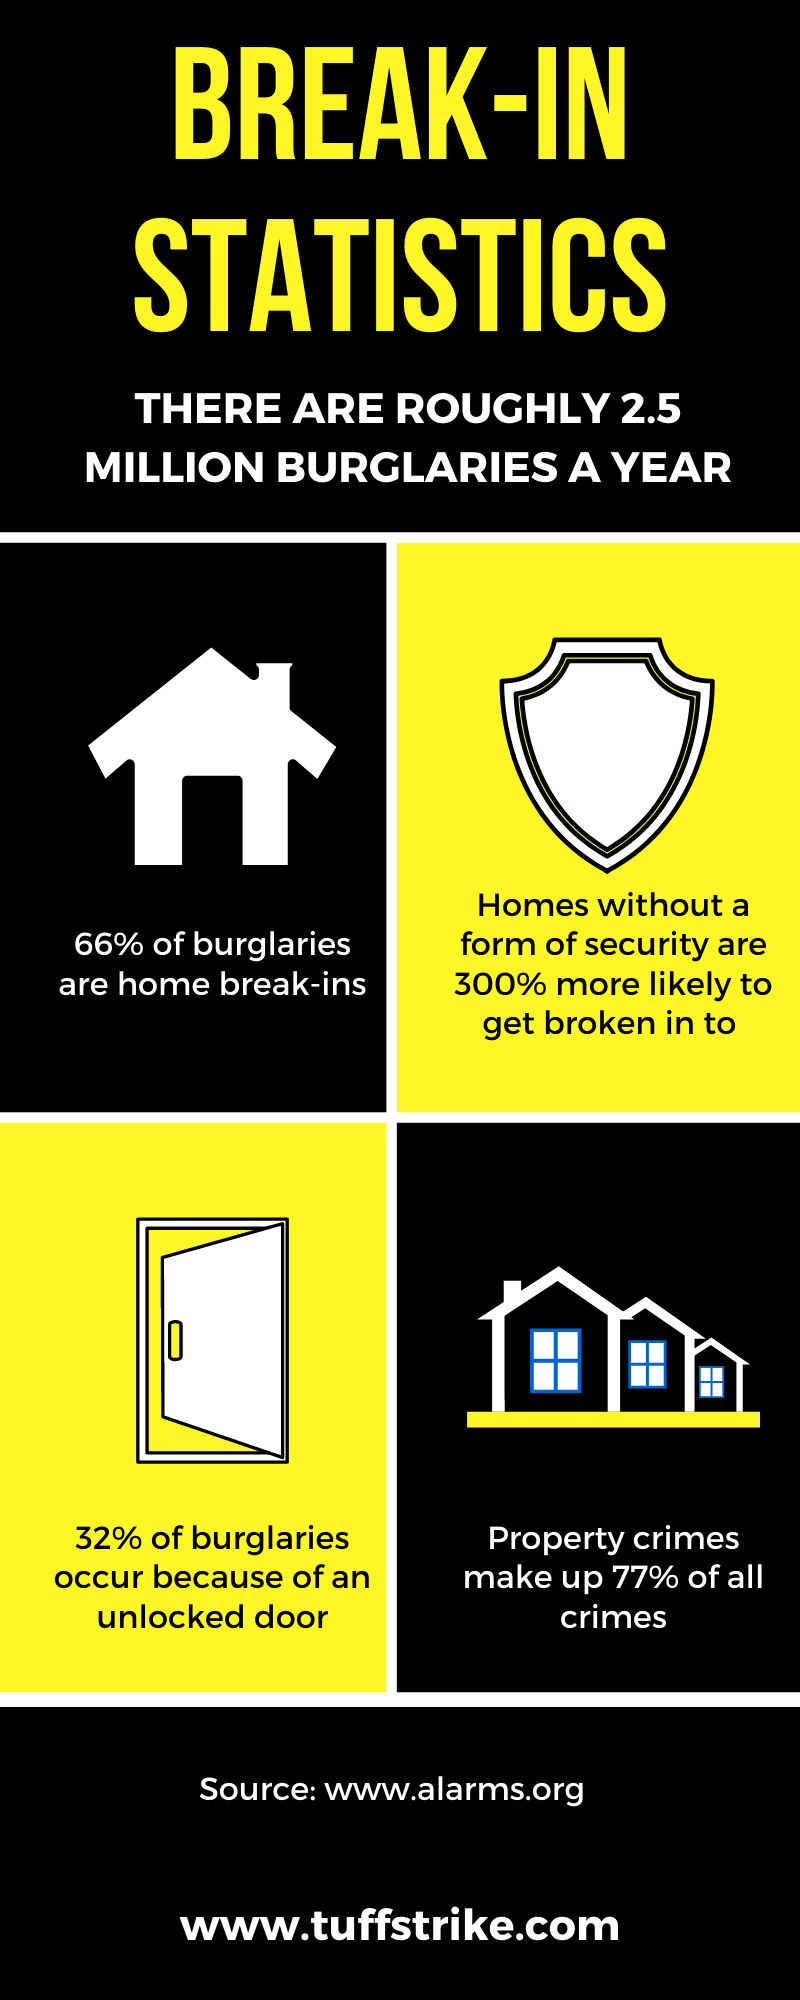 Burglary Statistics to Improve Home Security